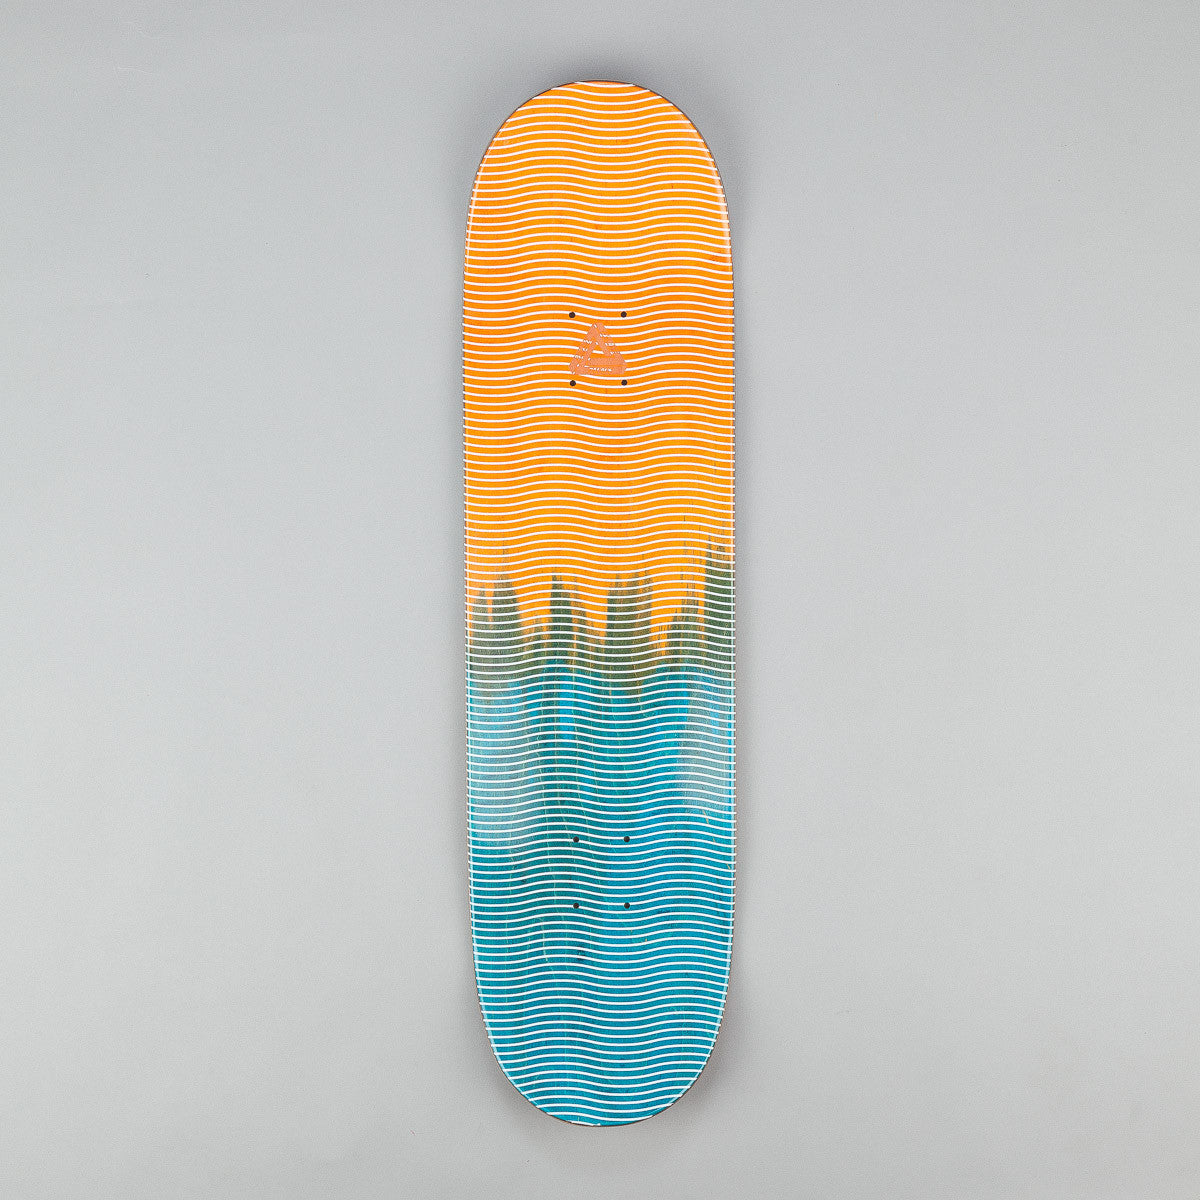 Palace Trippy Deck - 8.4""